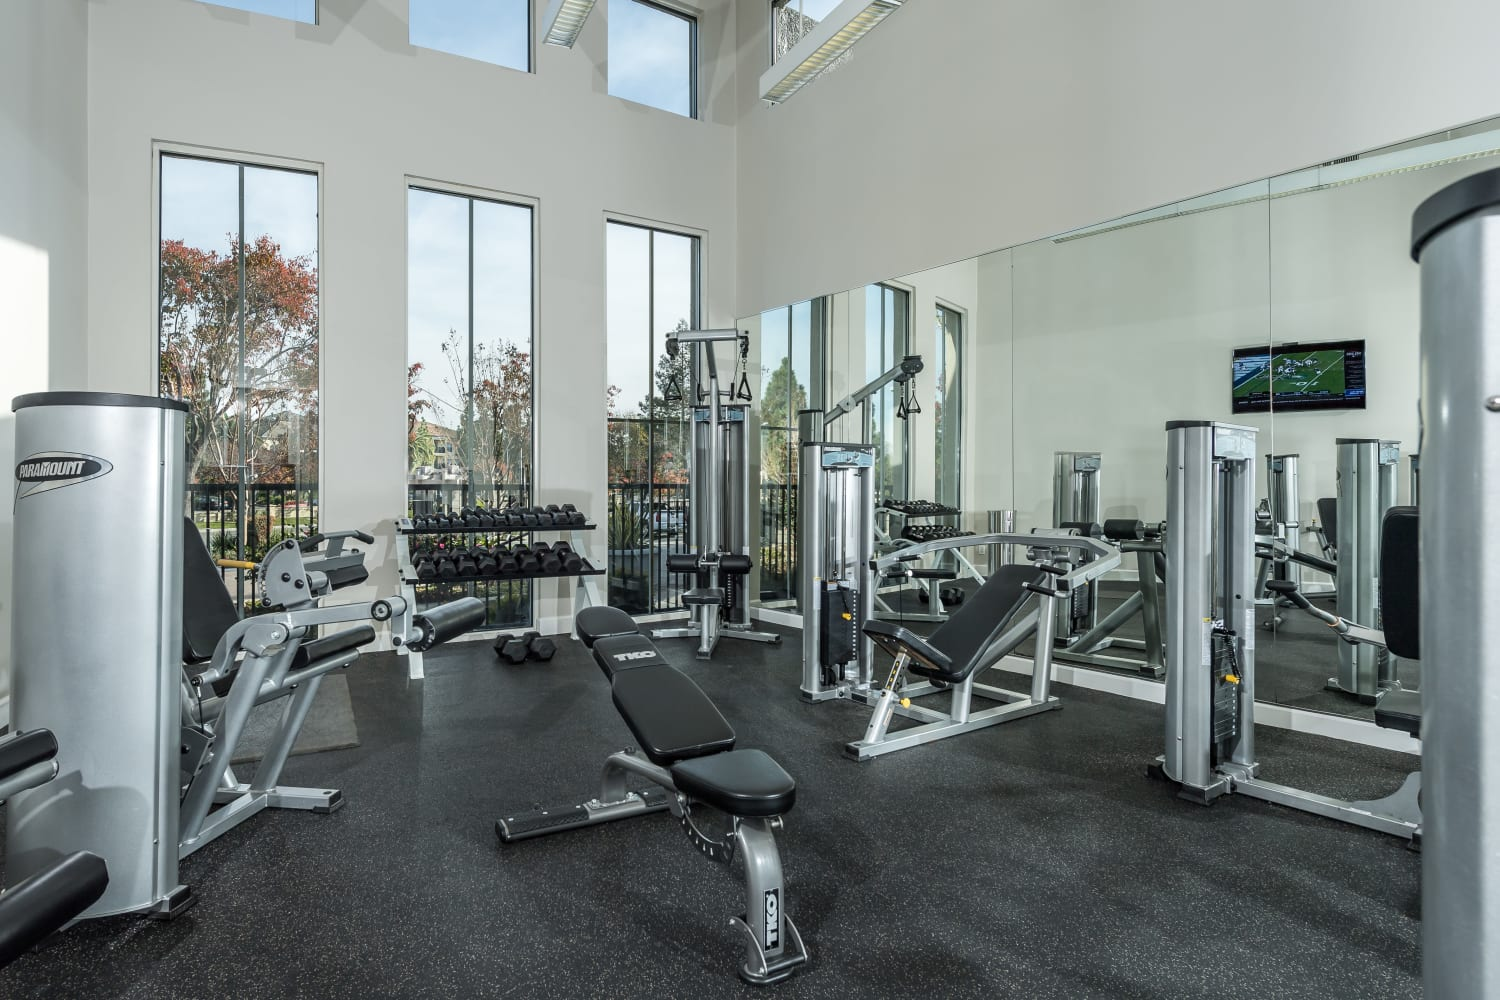 Our apartments at Bella Vista Apartments in Santa Clara, California offer a fitness center